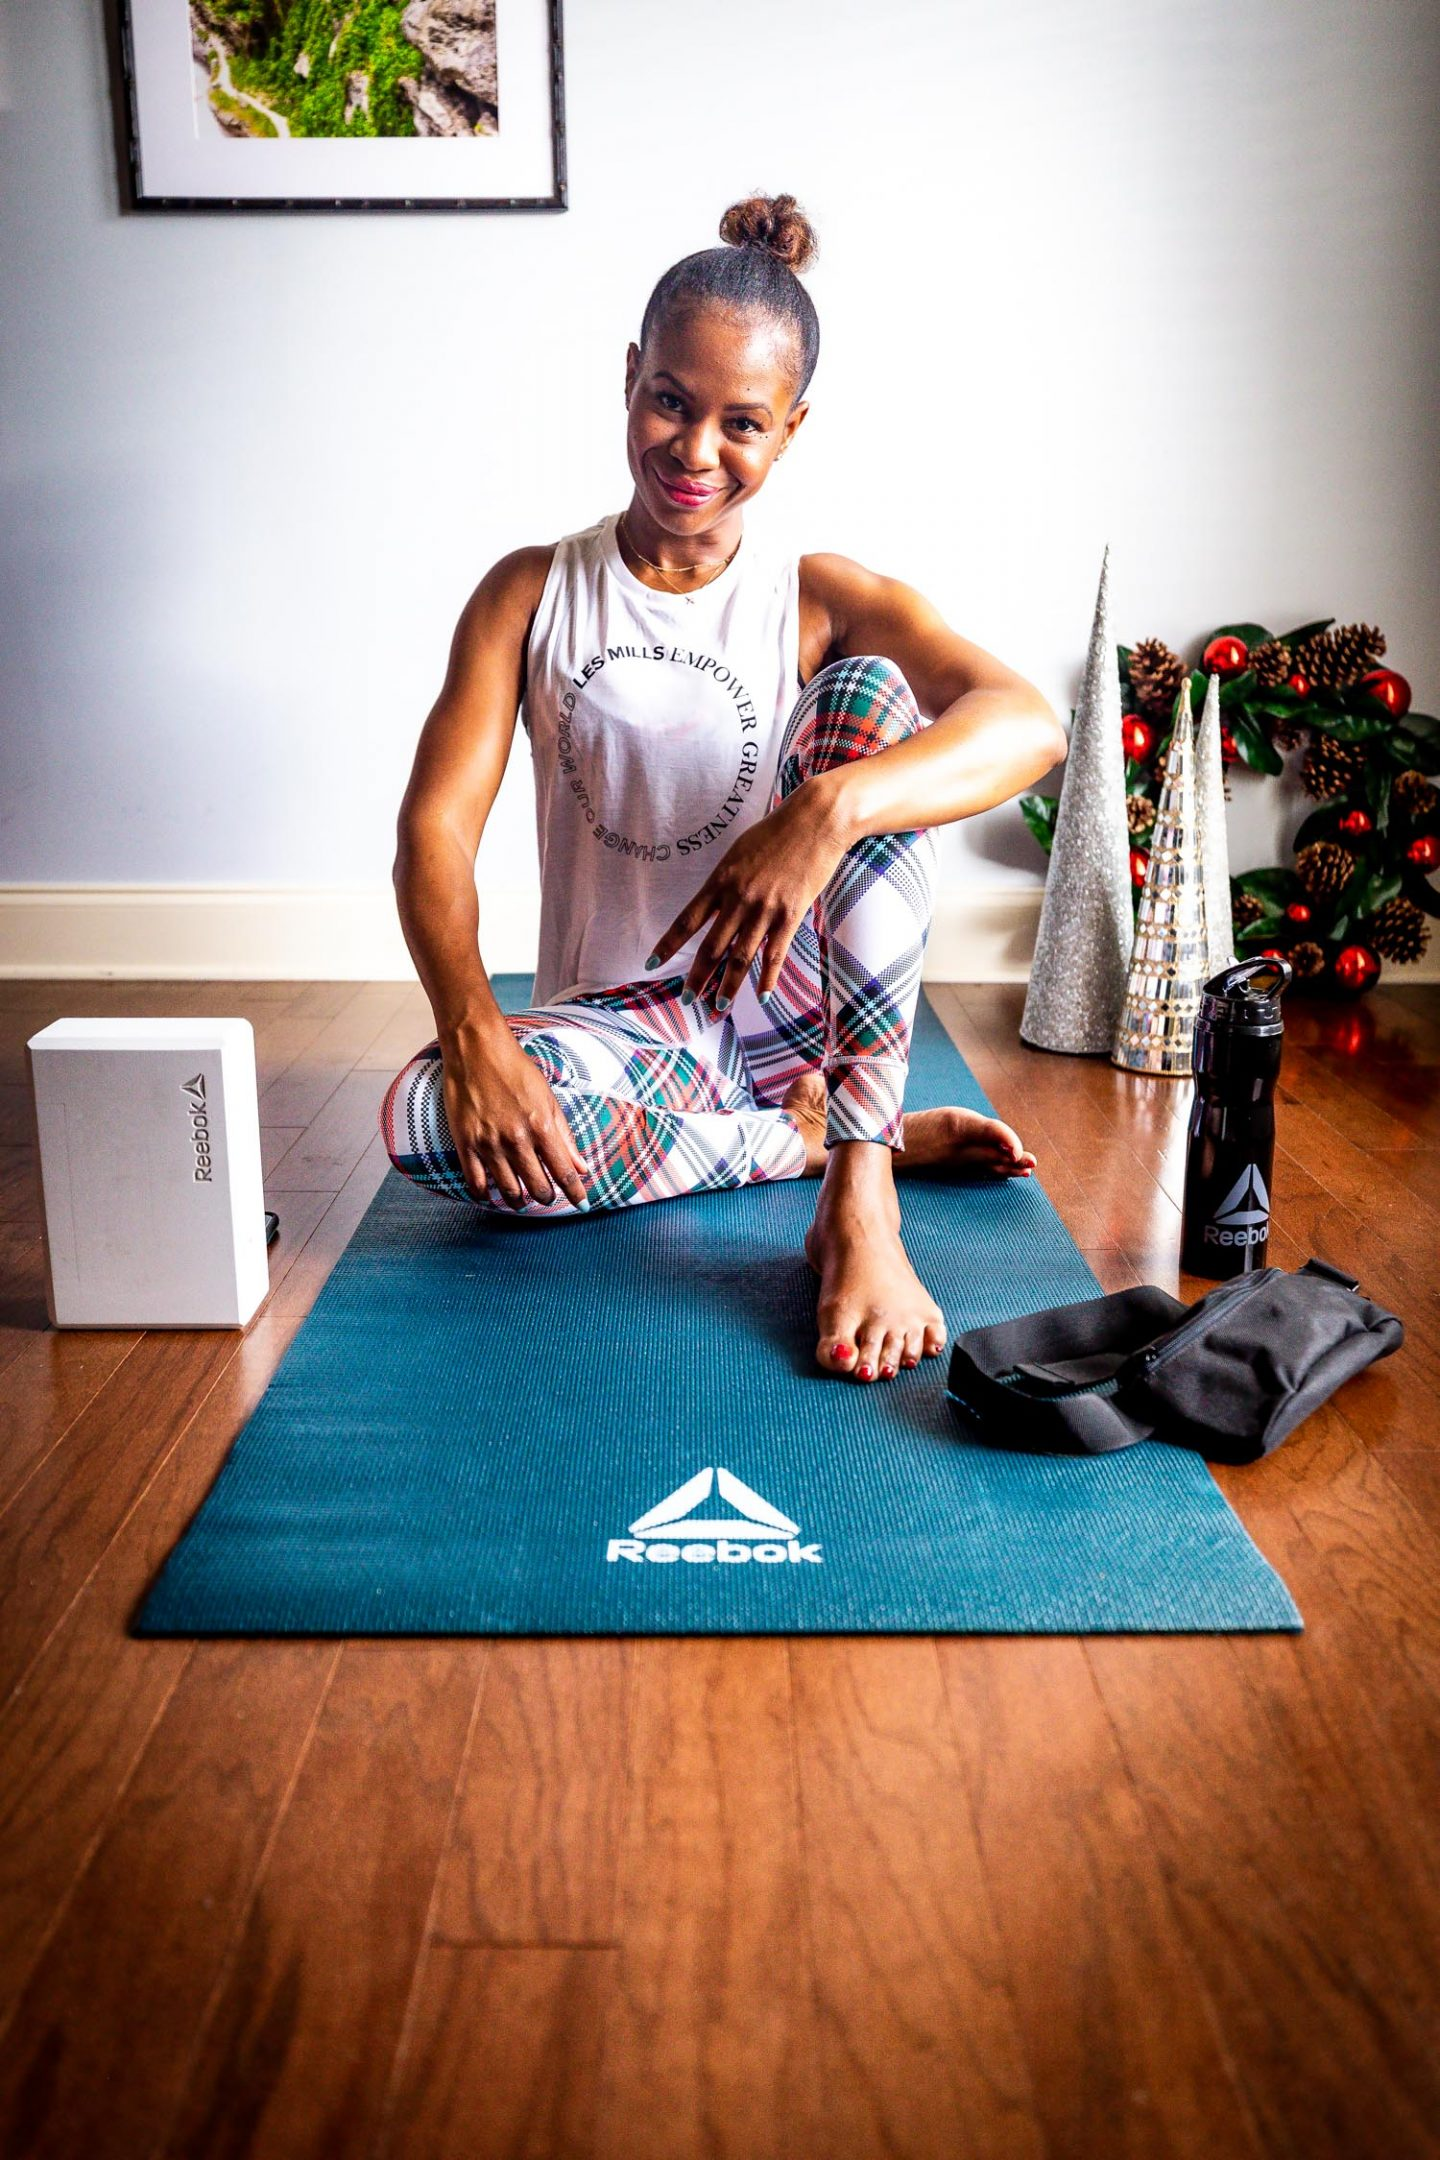 How Atlanta lifestyle blogger Monica Awe-Etuk will achieve minimum stress during the holidays. wearing reebok plaid leggings, and sports bra. Reebok yoga mat, yoga block and reebok water bottle for the holiday